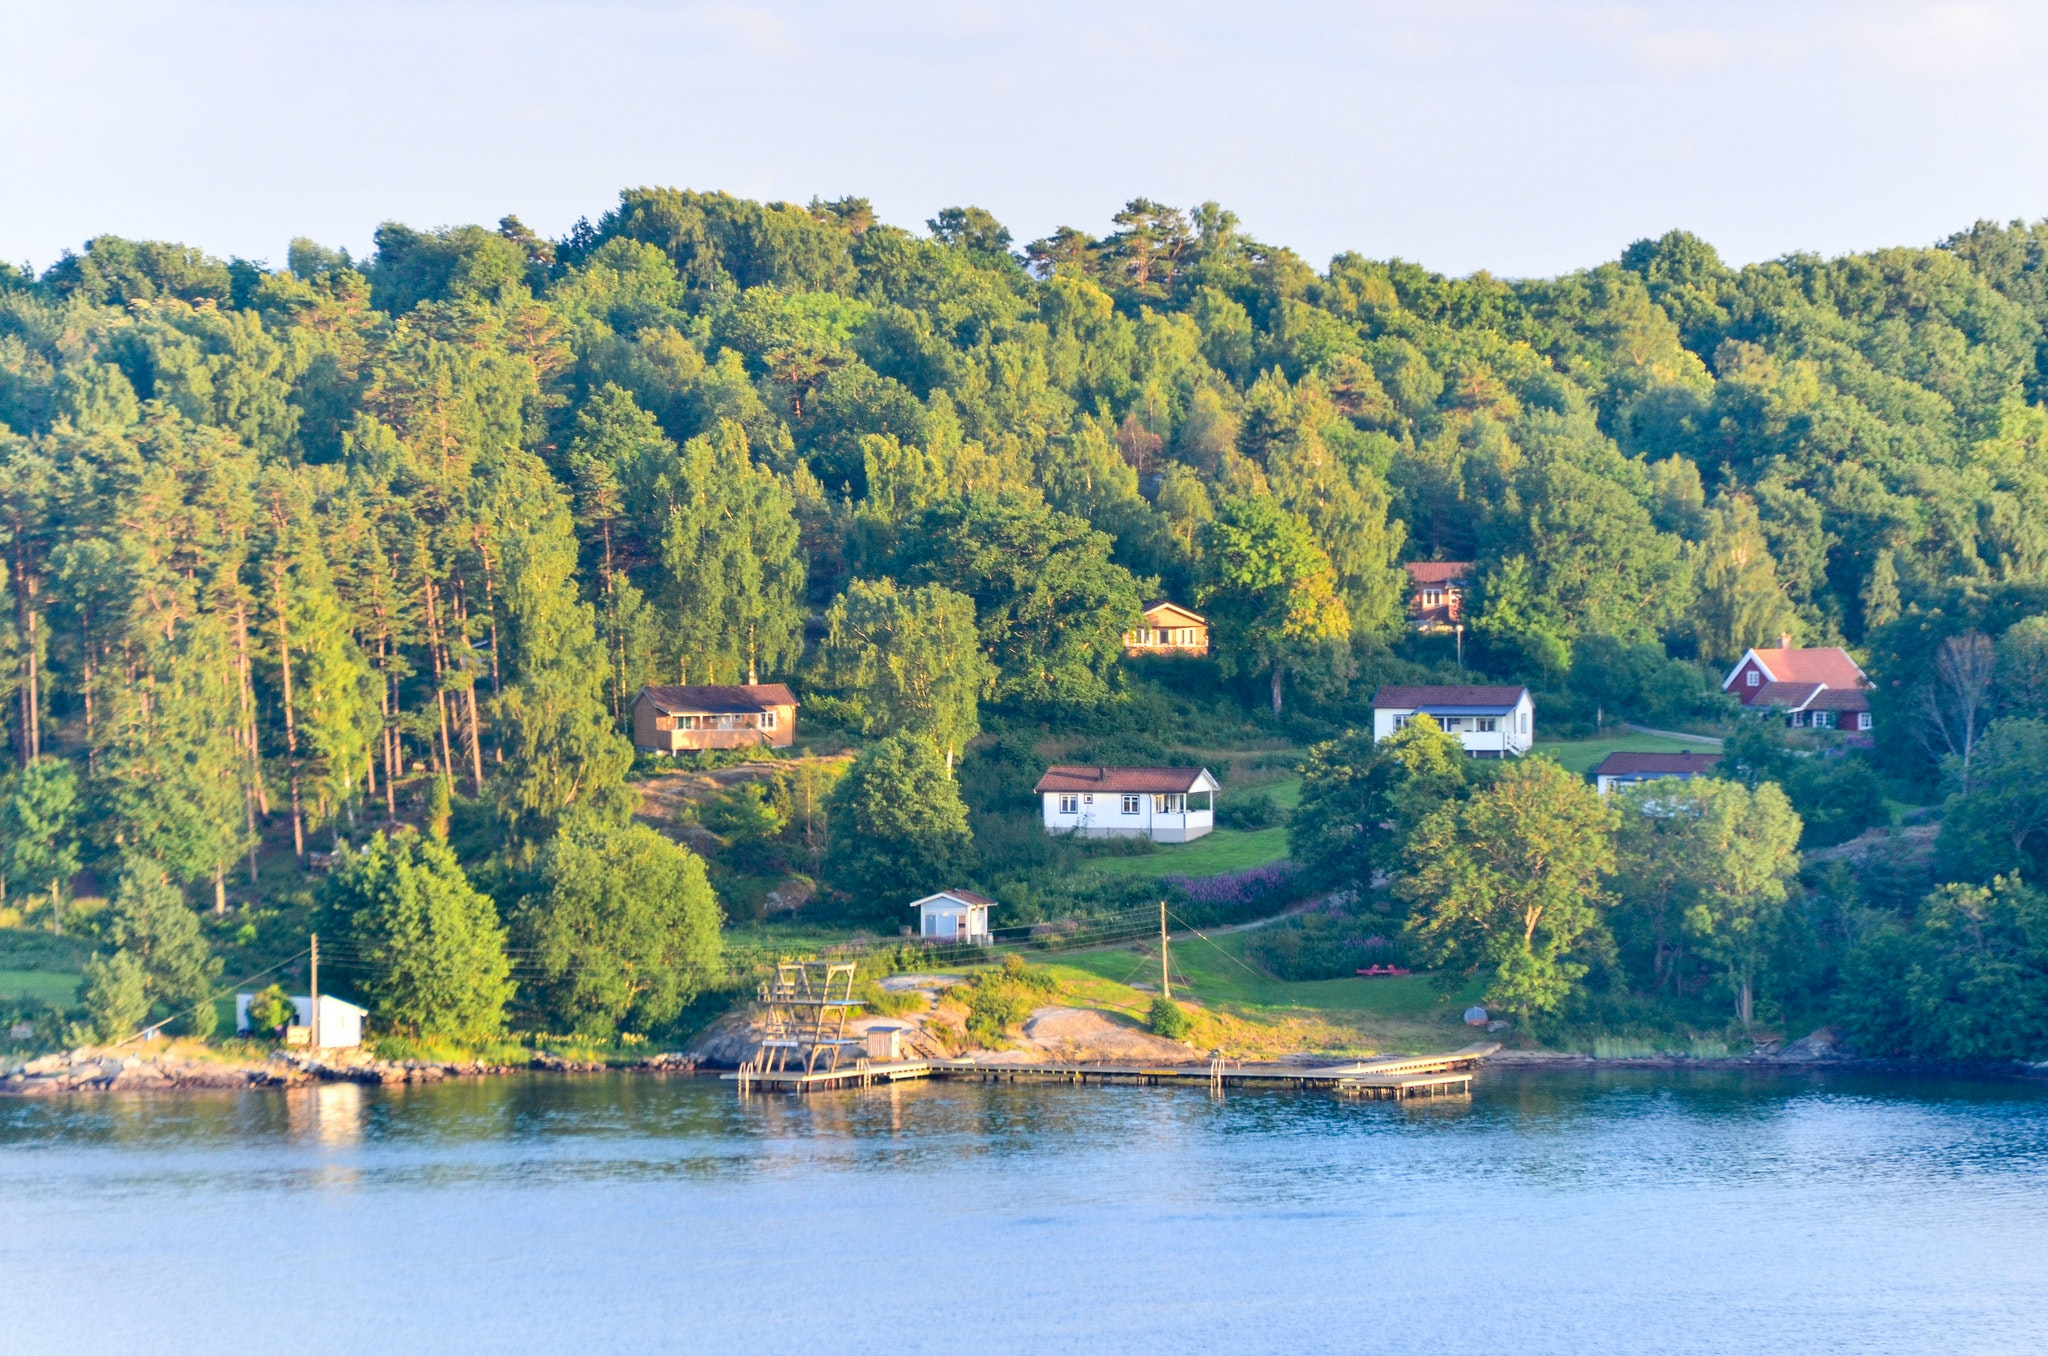 In summer, Tjörn's population nearly triples with vacationers.